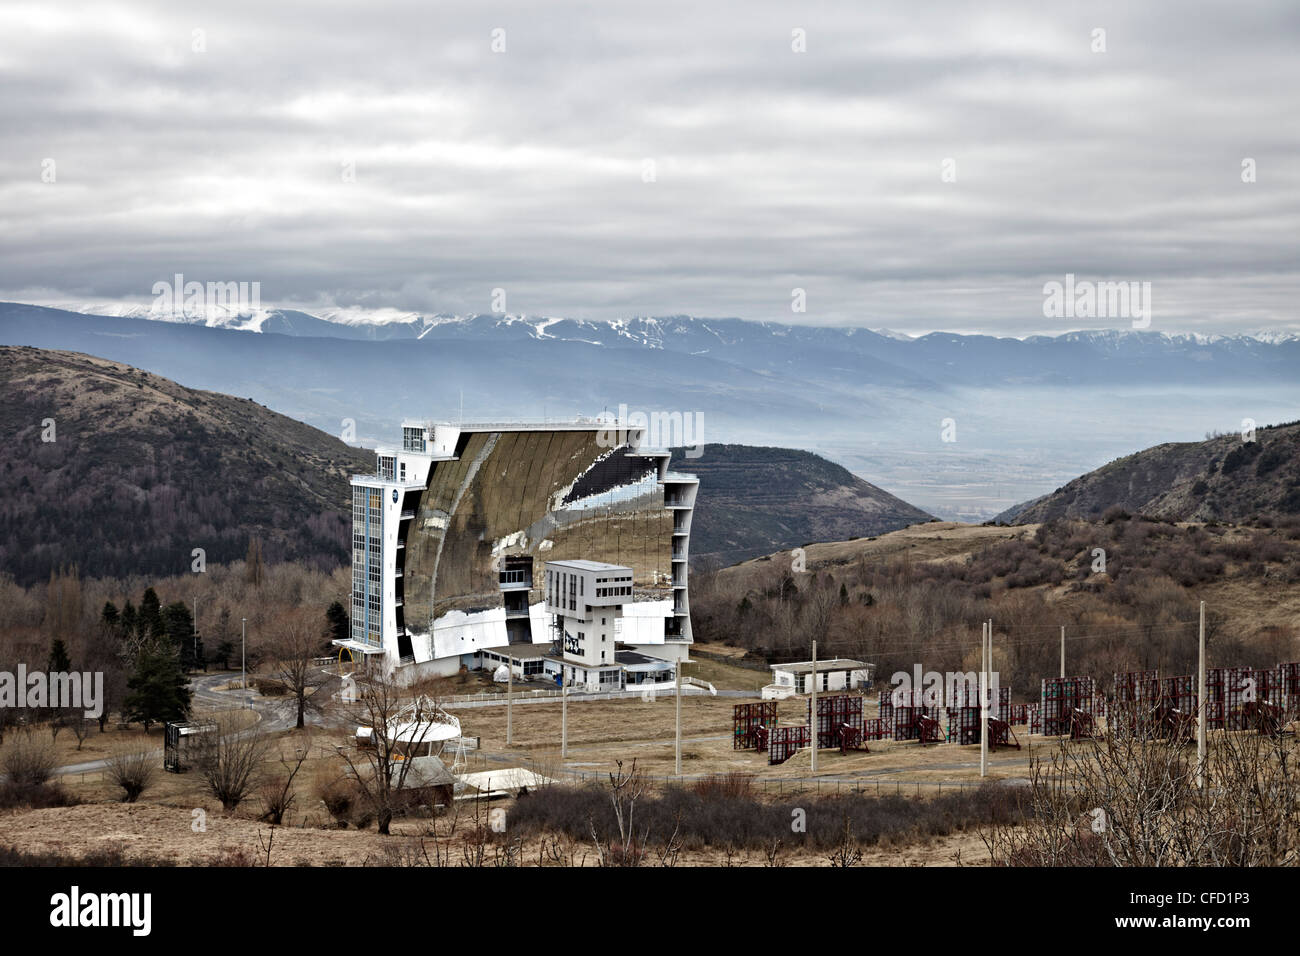 The solar furnace that can reach temperatures up to 3500 degrees C at Odeillo in the Pyrenees-Orientales, France - Stock Image